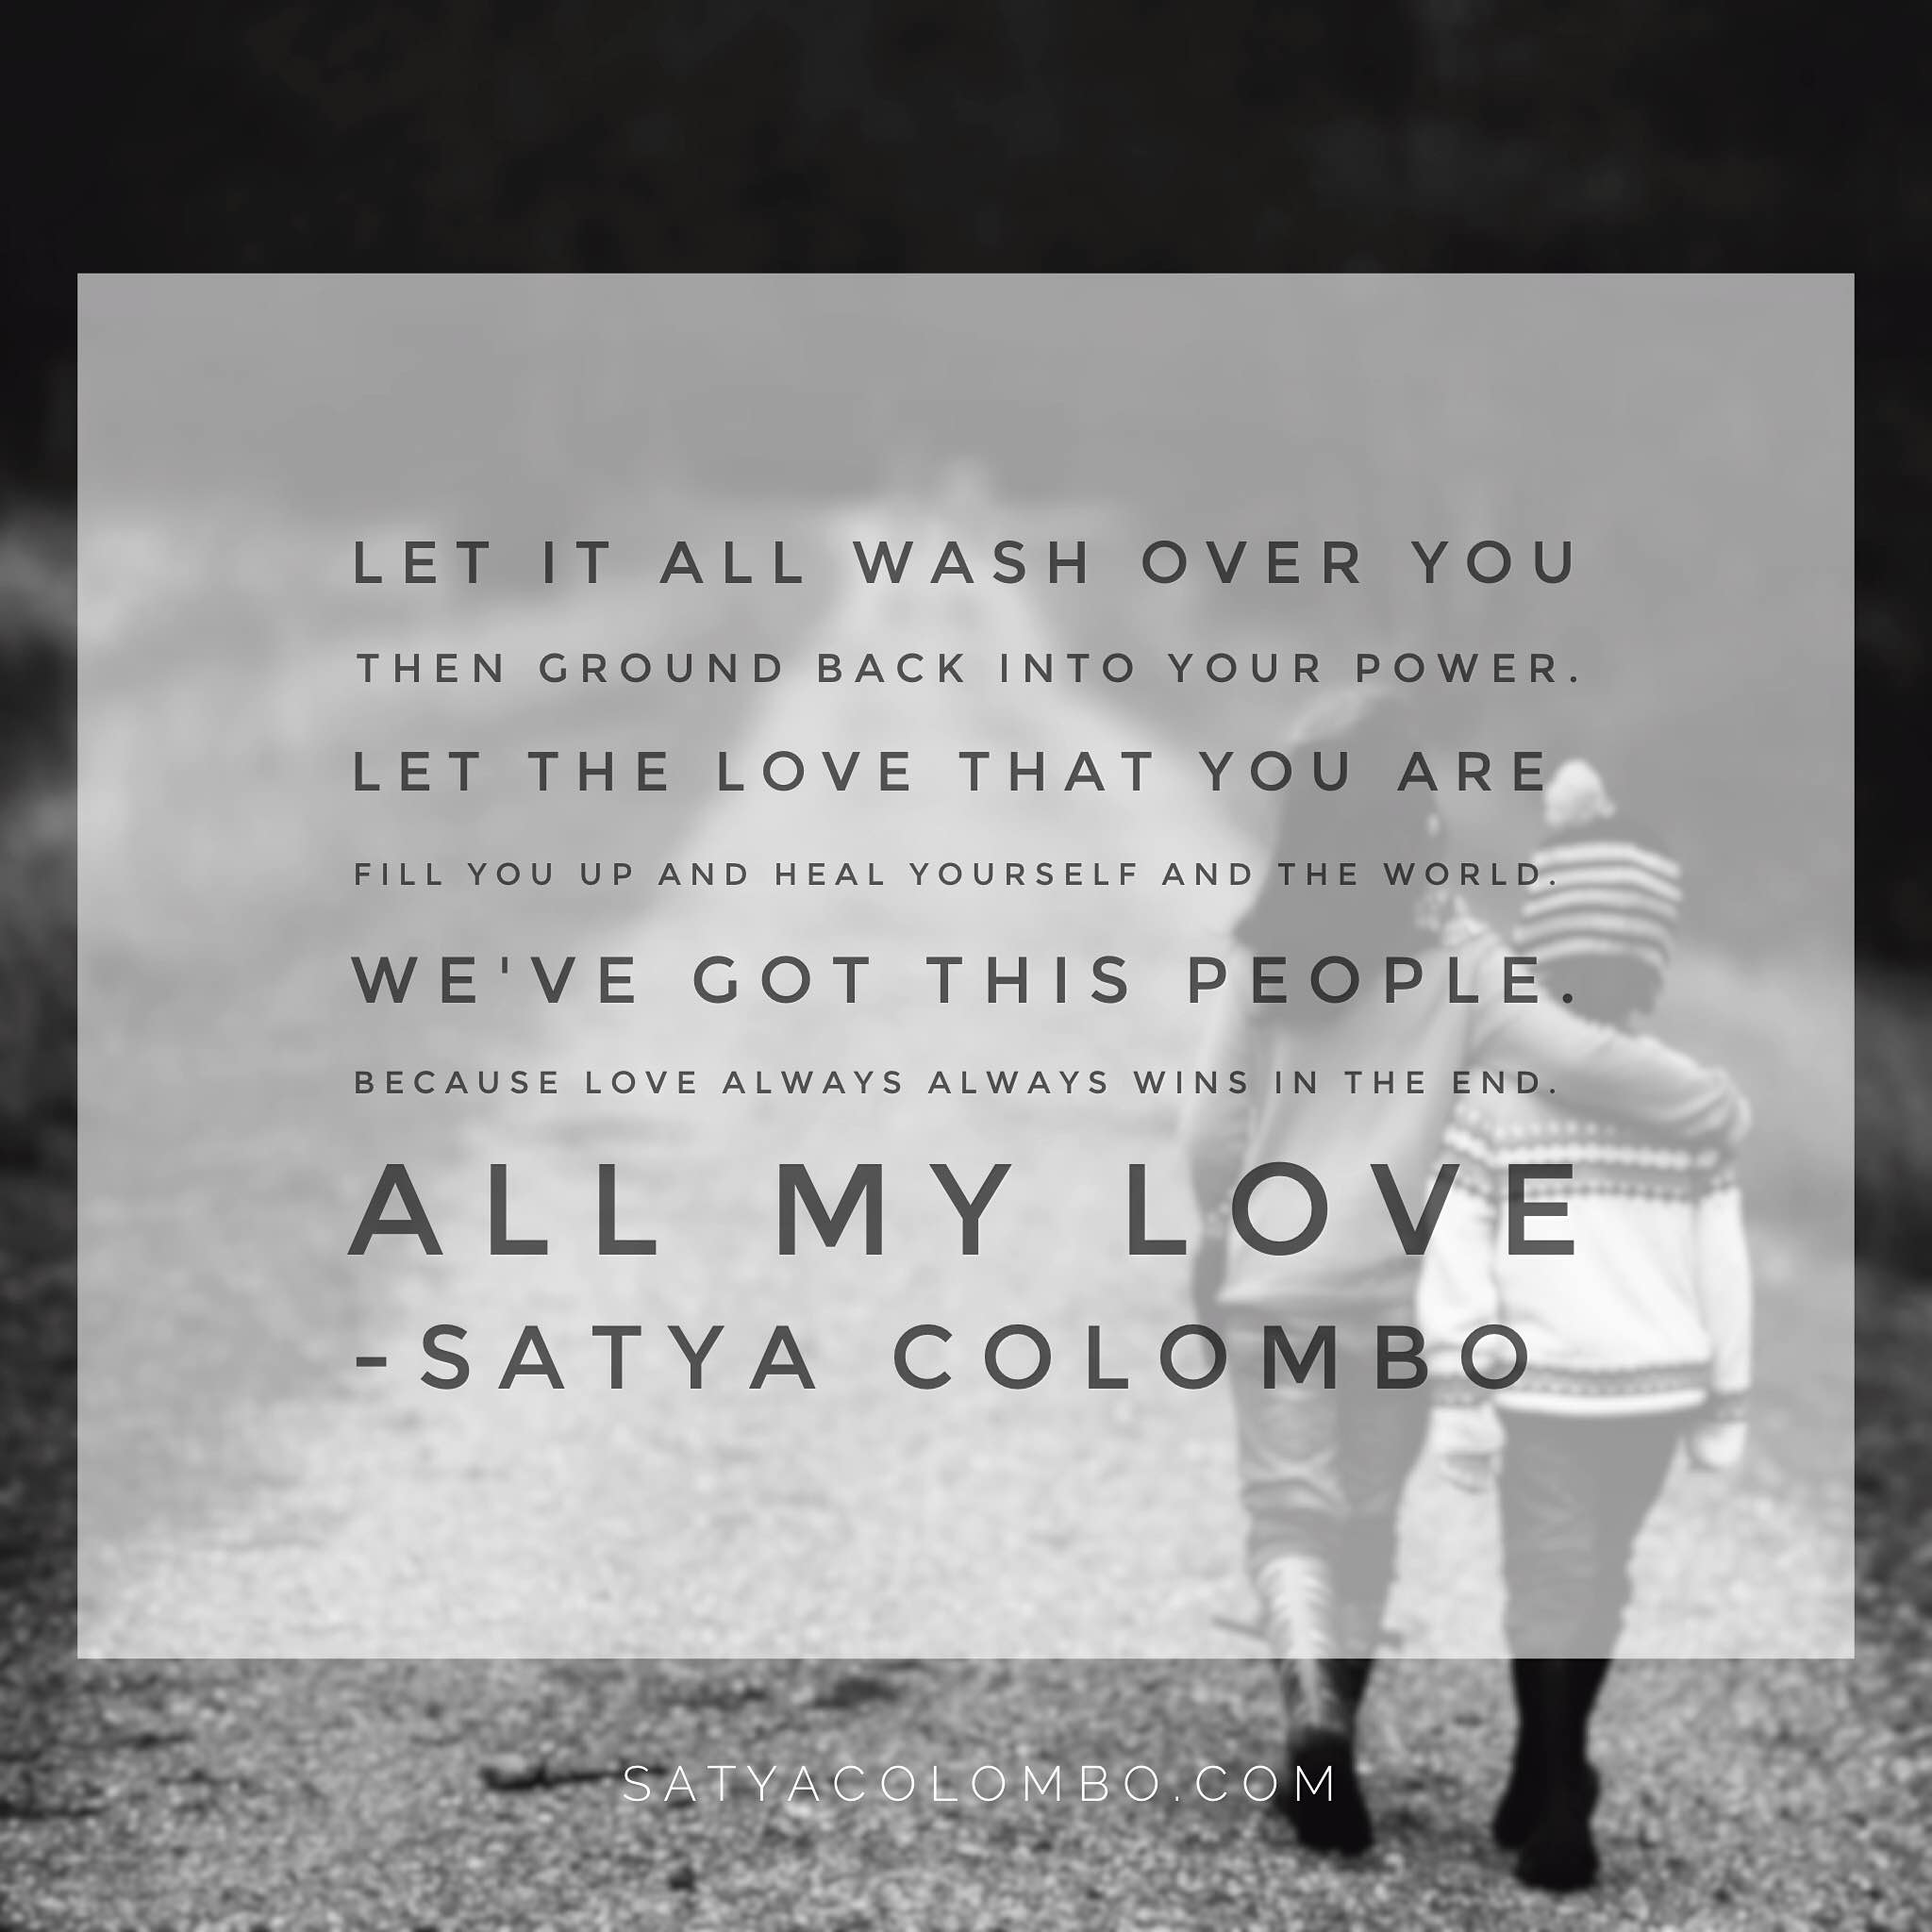 let-it-wash-over-you-then-stand-in-love-satya-colombo